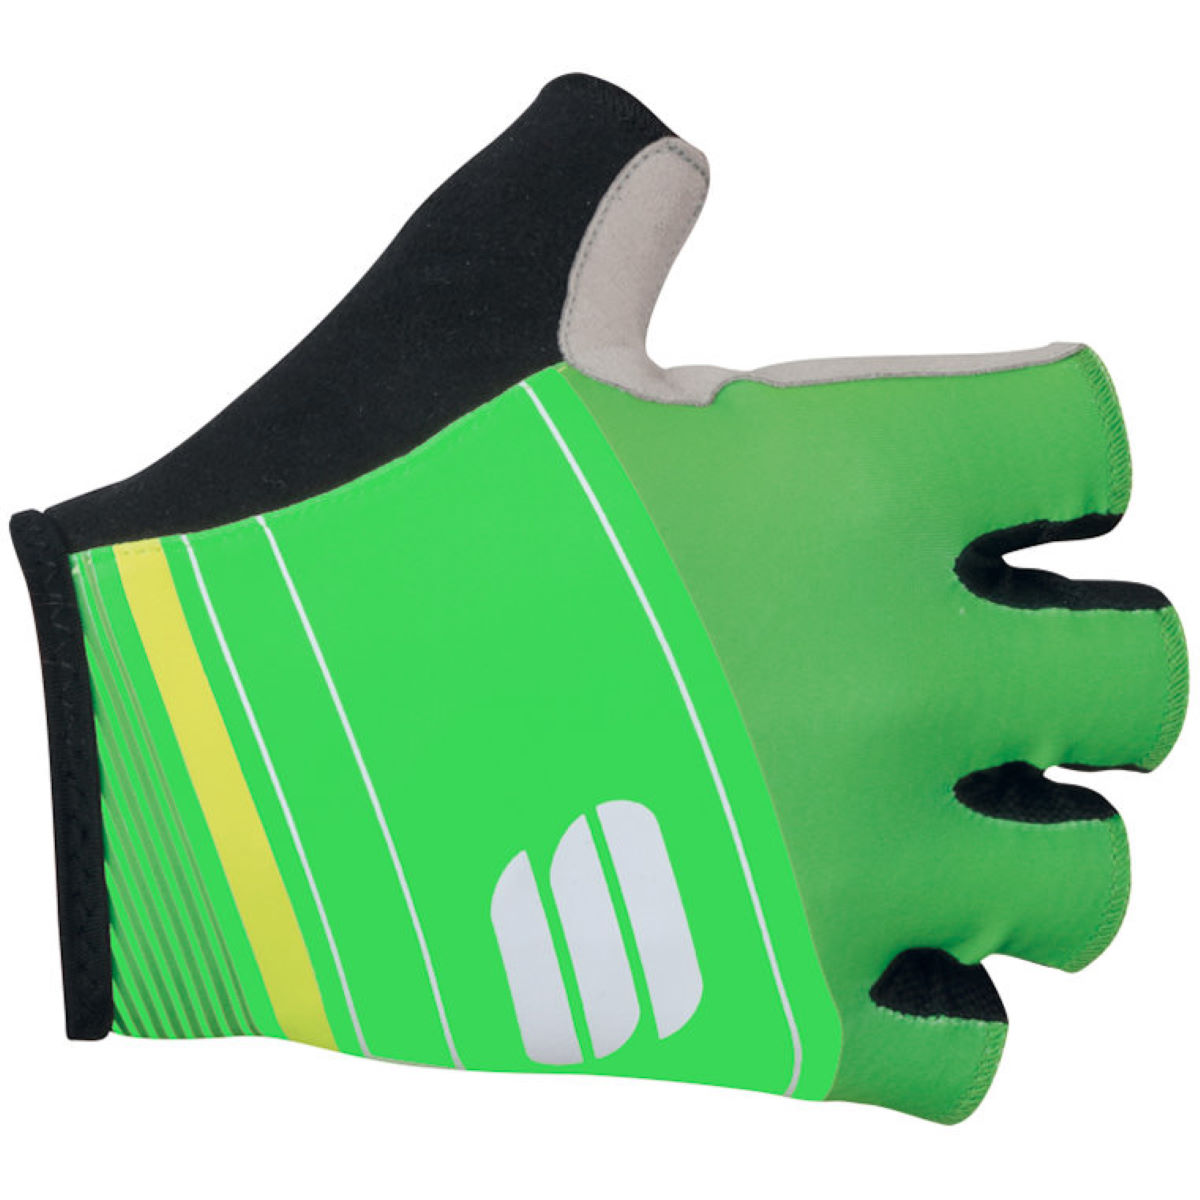 Gants courts Sportful Gruppetto Pro - XXL Green/Yellow Gants courts